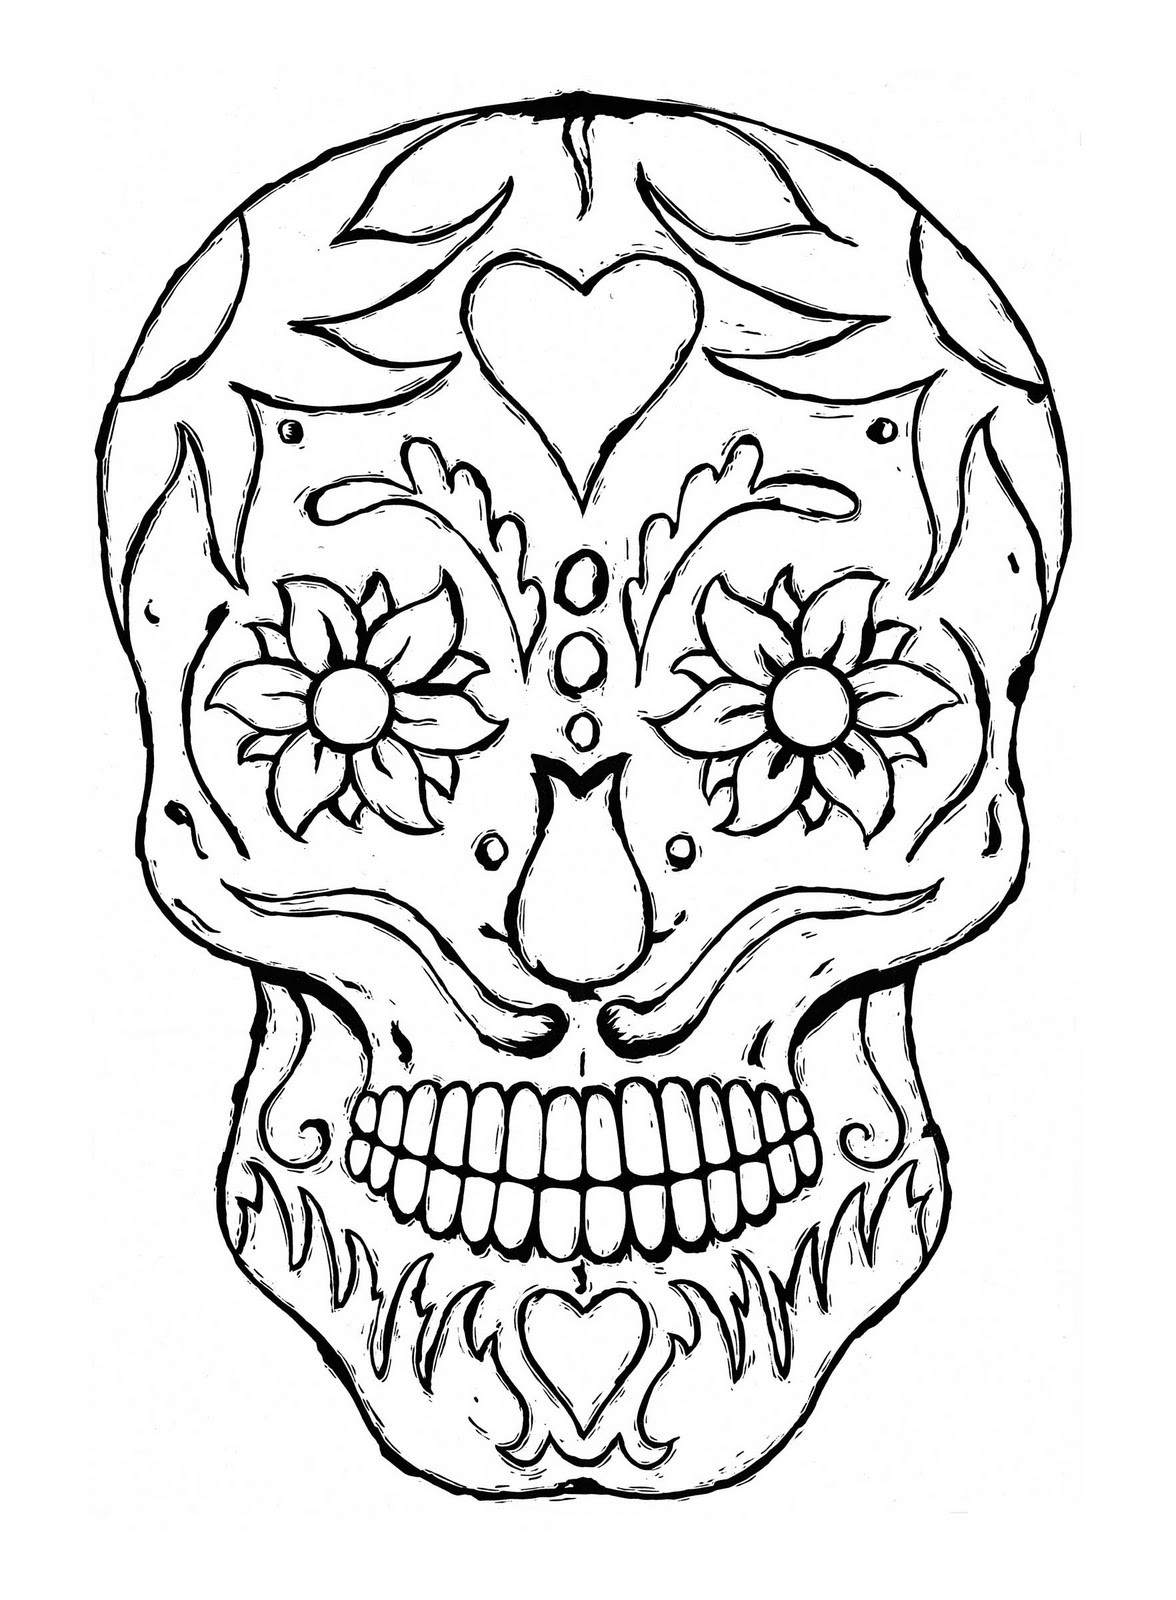 Printable Sugar Skulls Coloring Pages  Free Printable Skull Coloring Pages For Kids